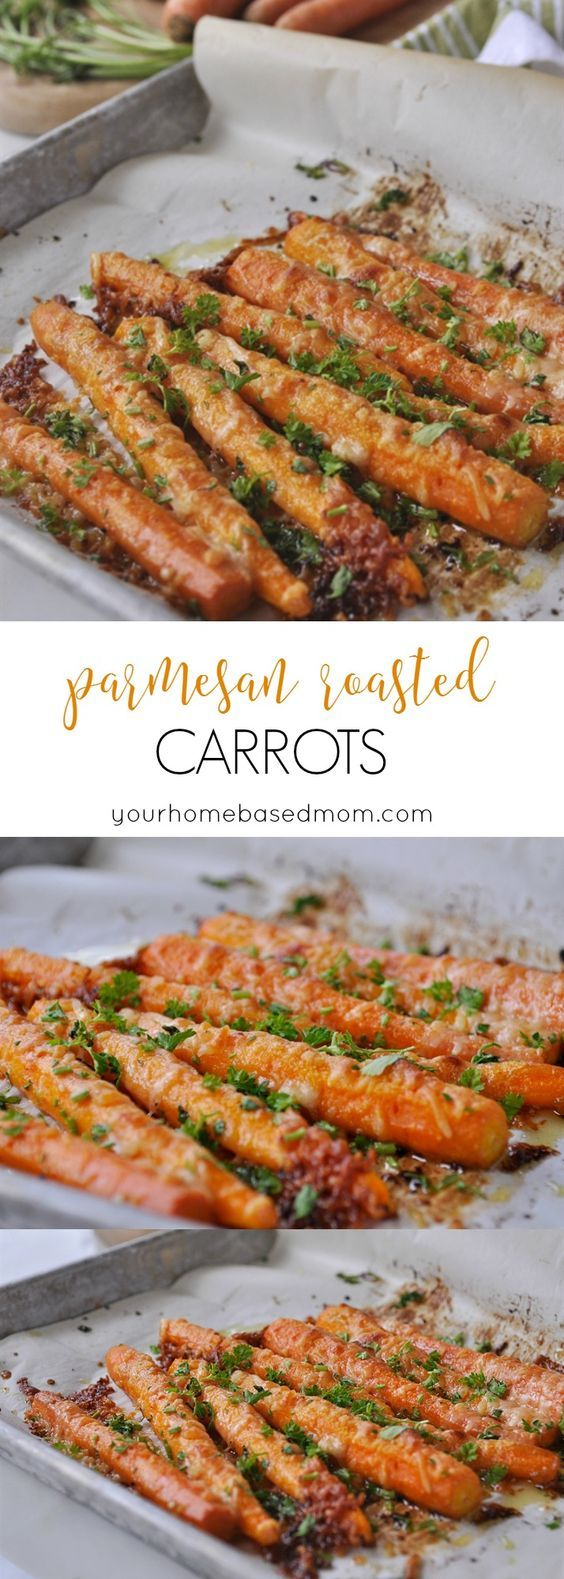 Parmesan Roasted Carrots #parmesan #roasted #carrots #veganrecipes #veggies #vegetarianrecipes #vegetablerecipes